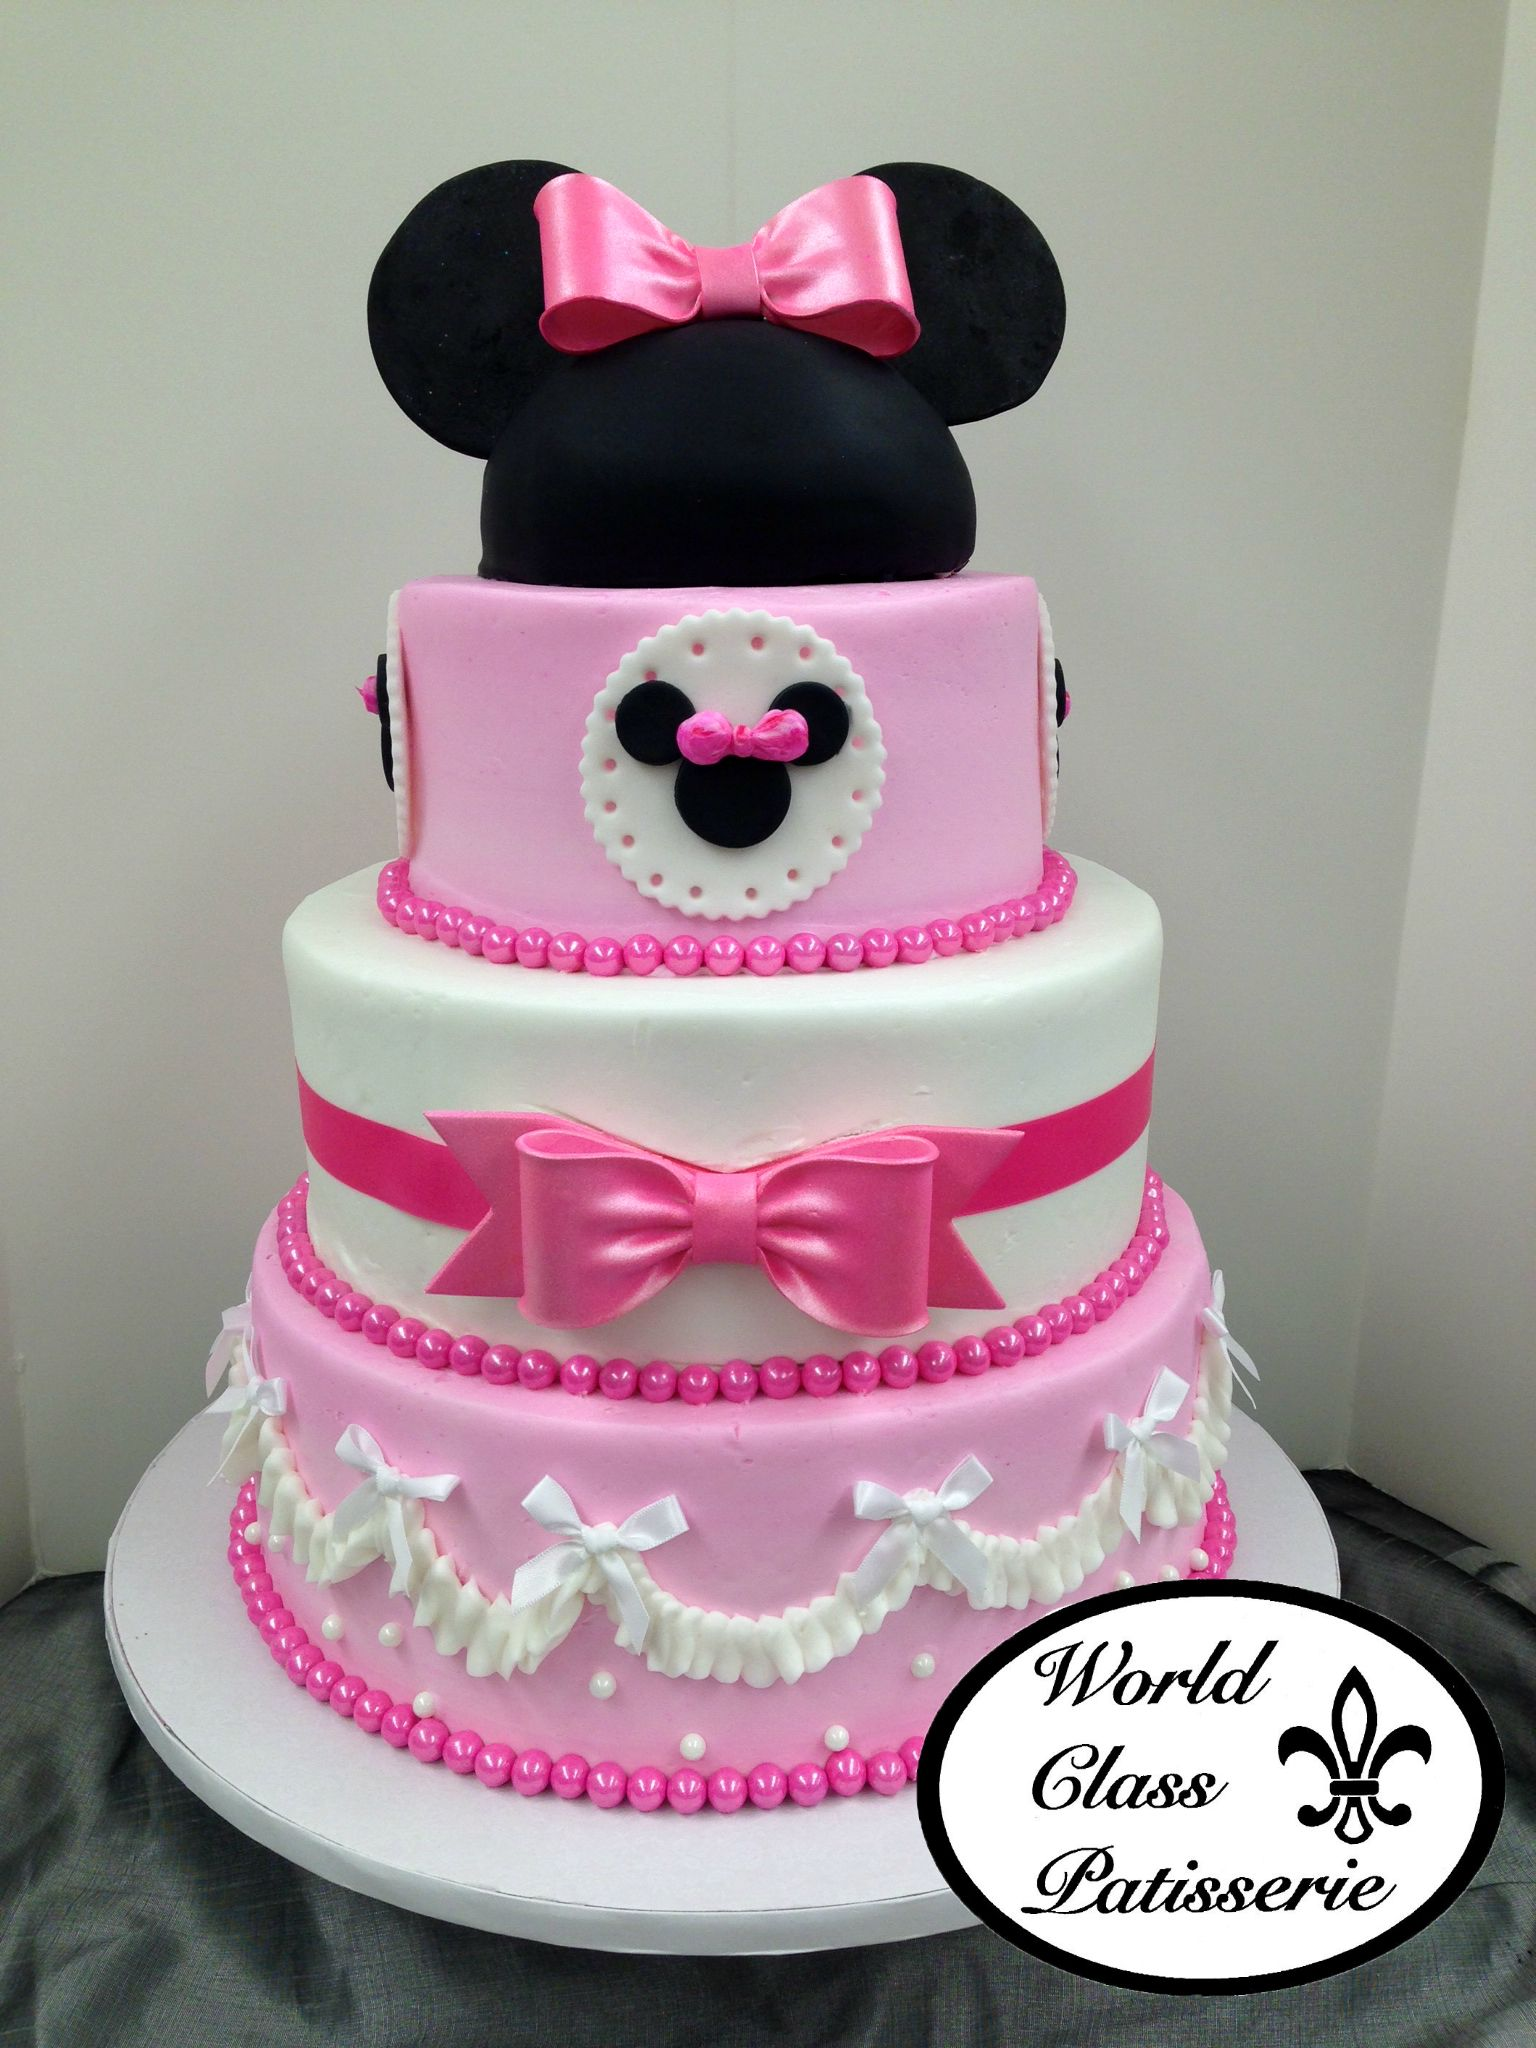 Disney Fanatics Look No Further This World Class Patisserie Cake